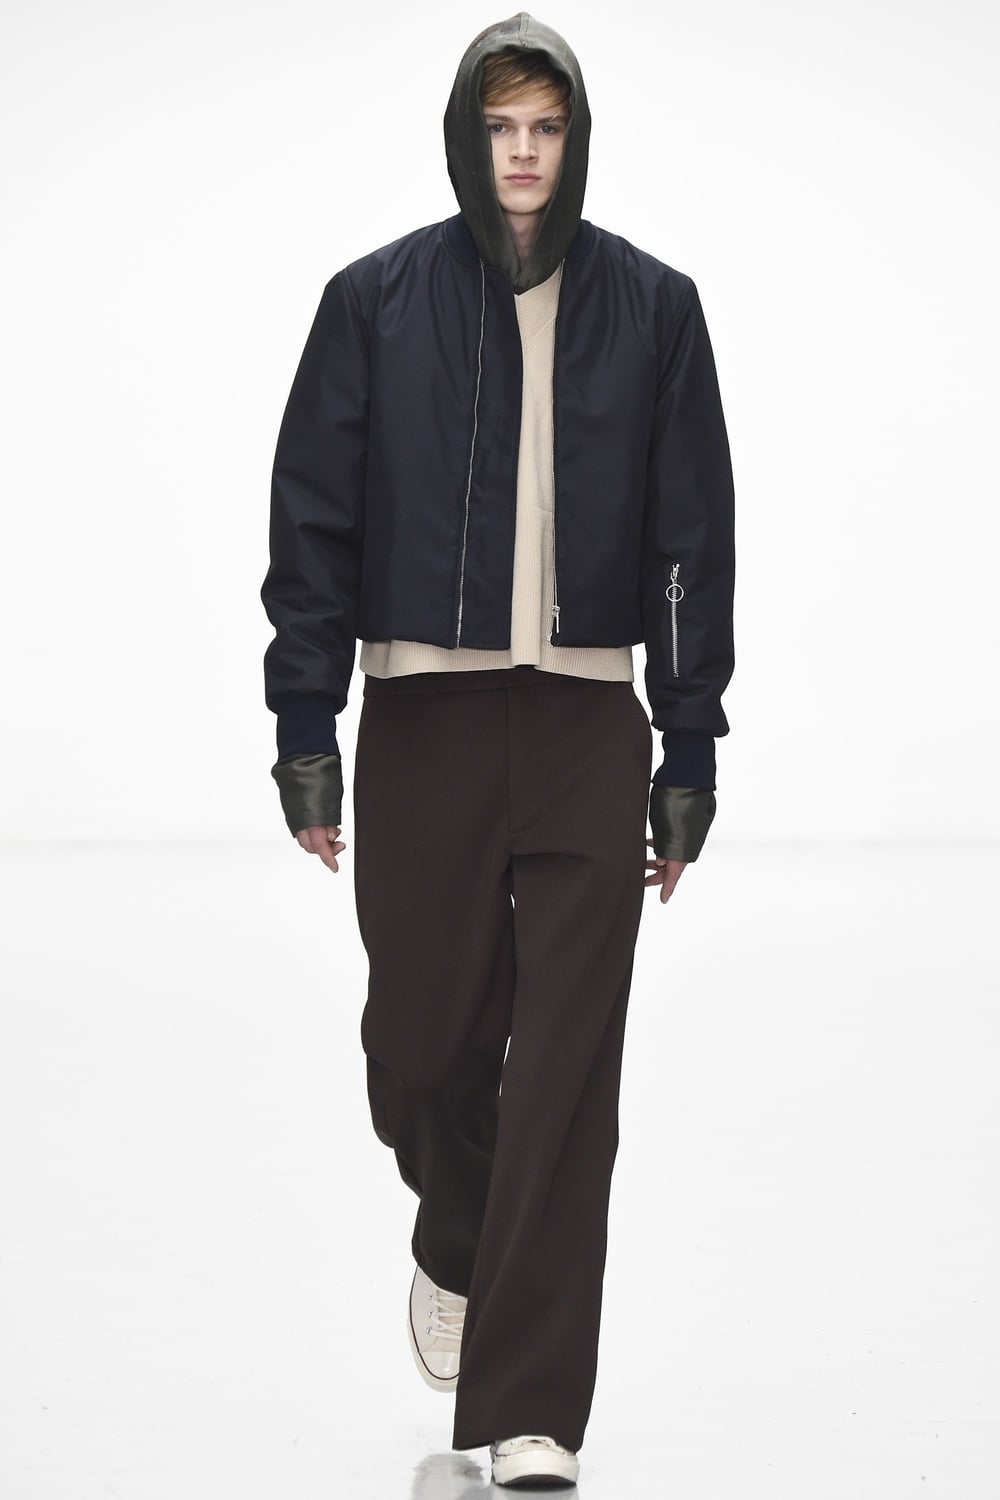 Agi & Sam AW16 at London Collections Men